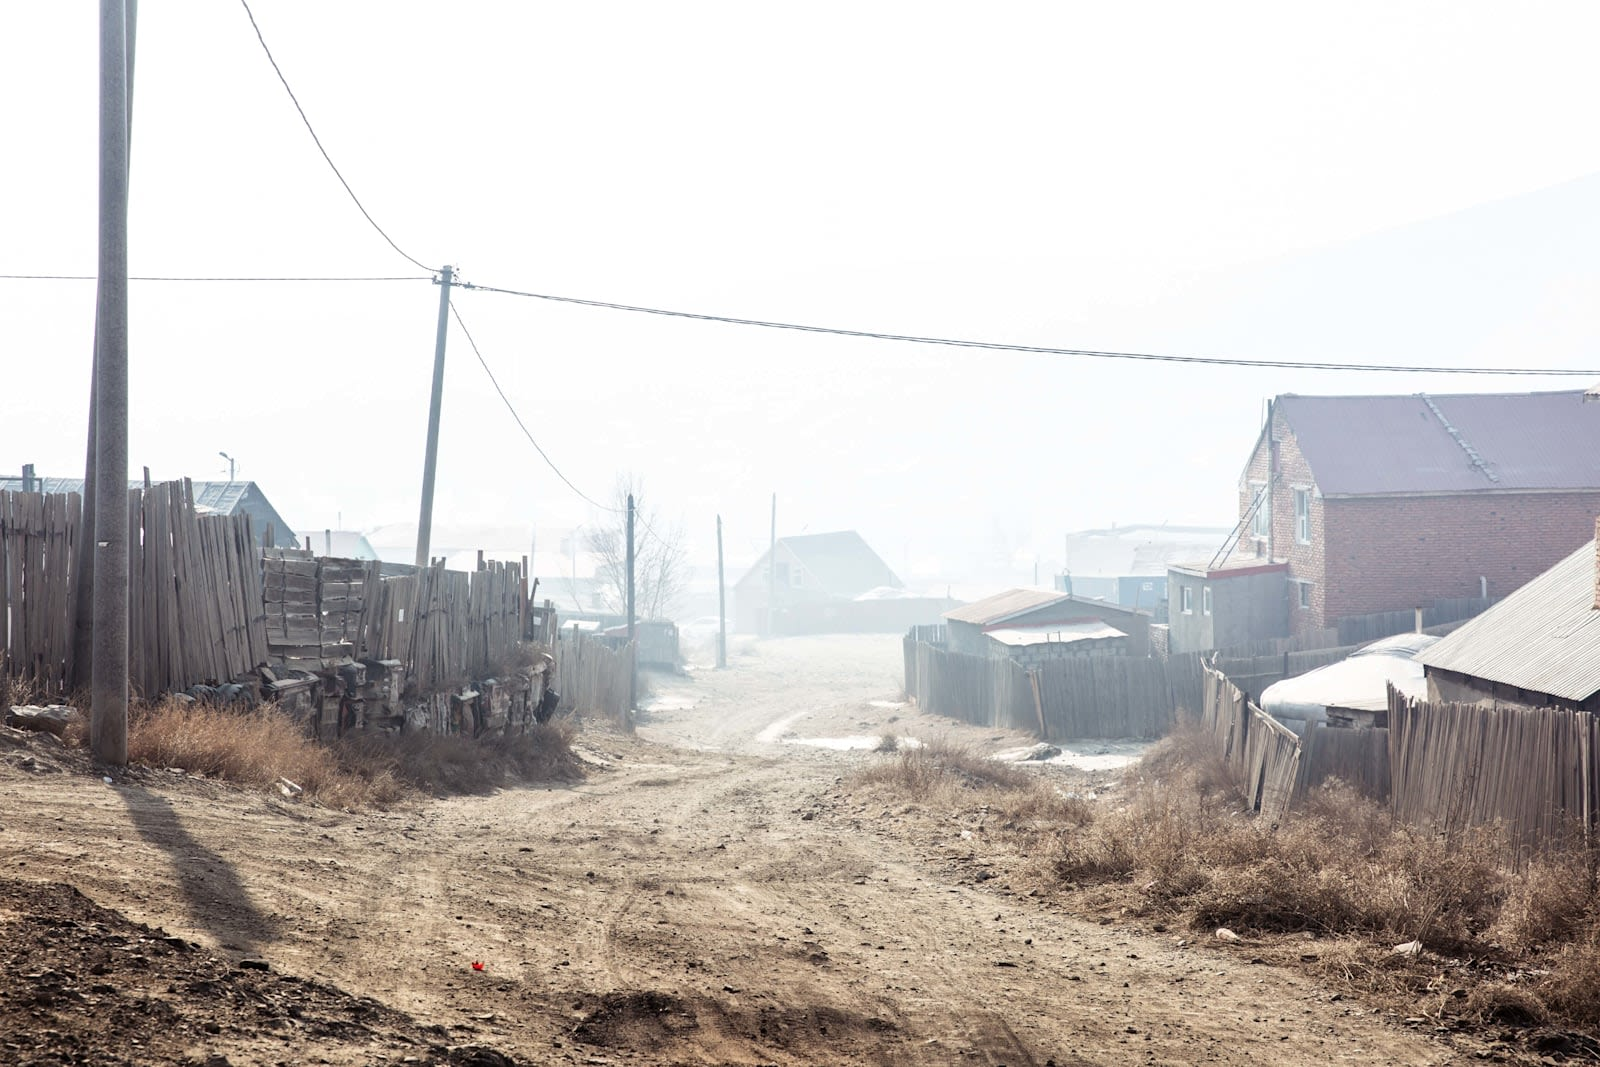 A view of a misty, derelict street